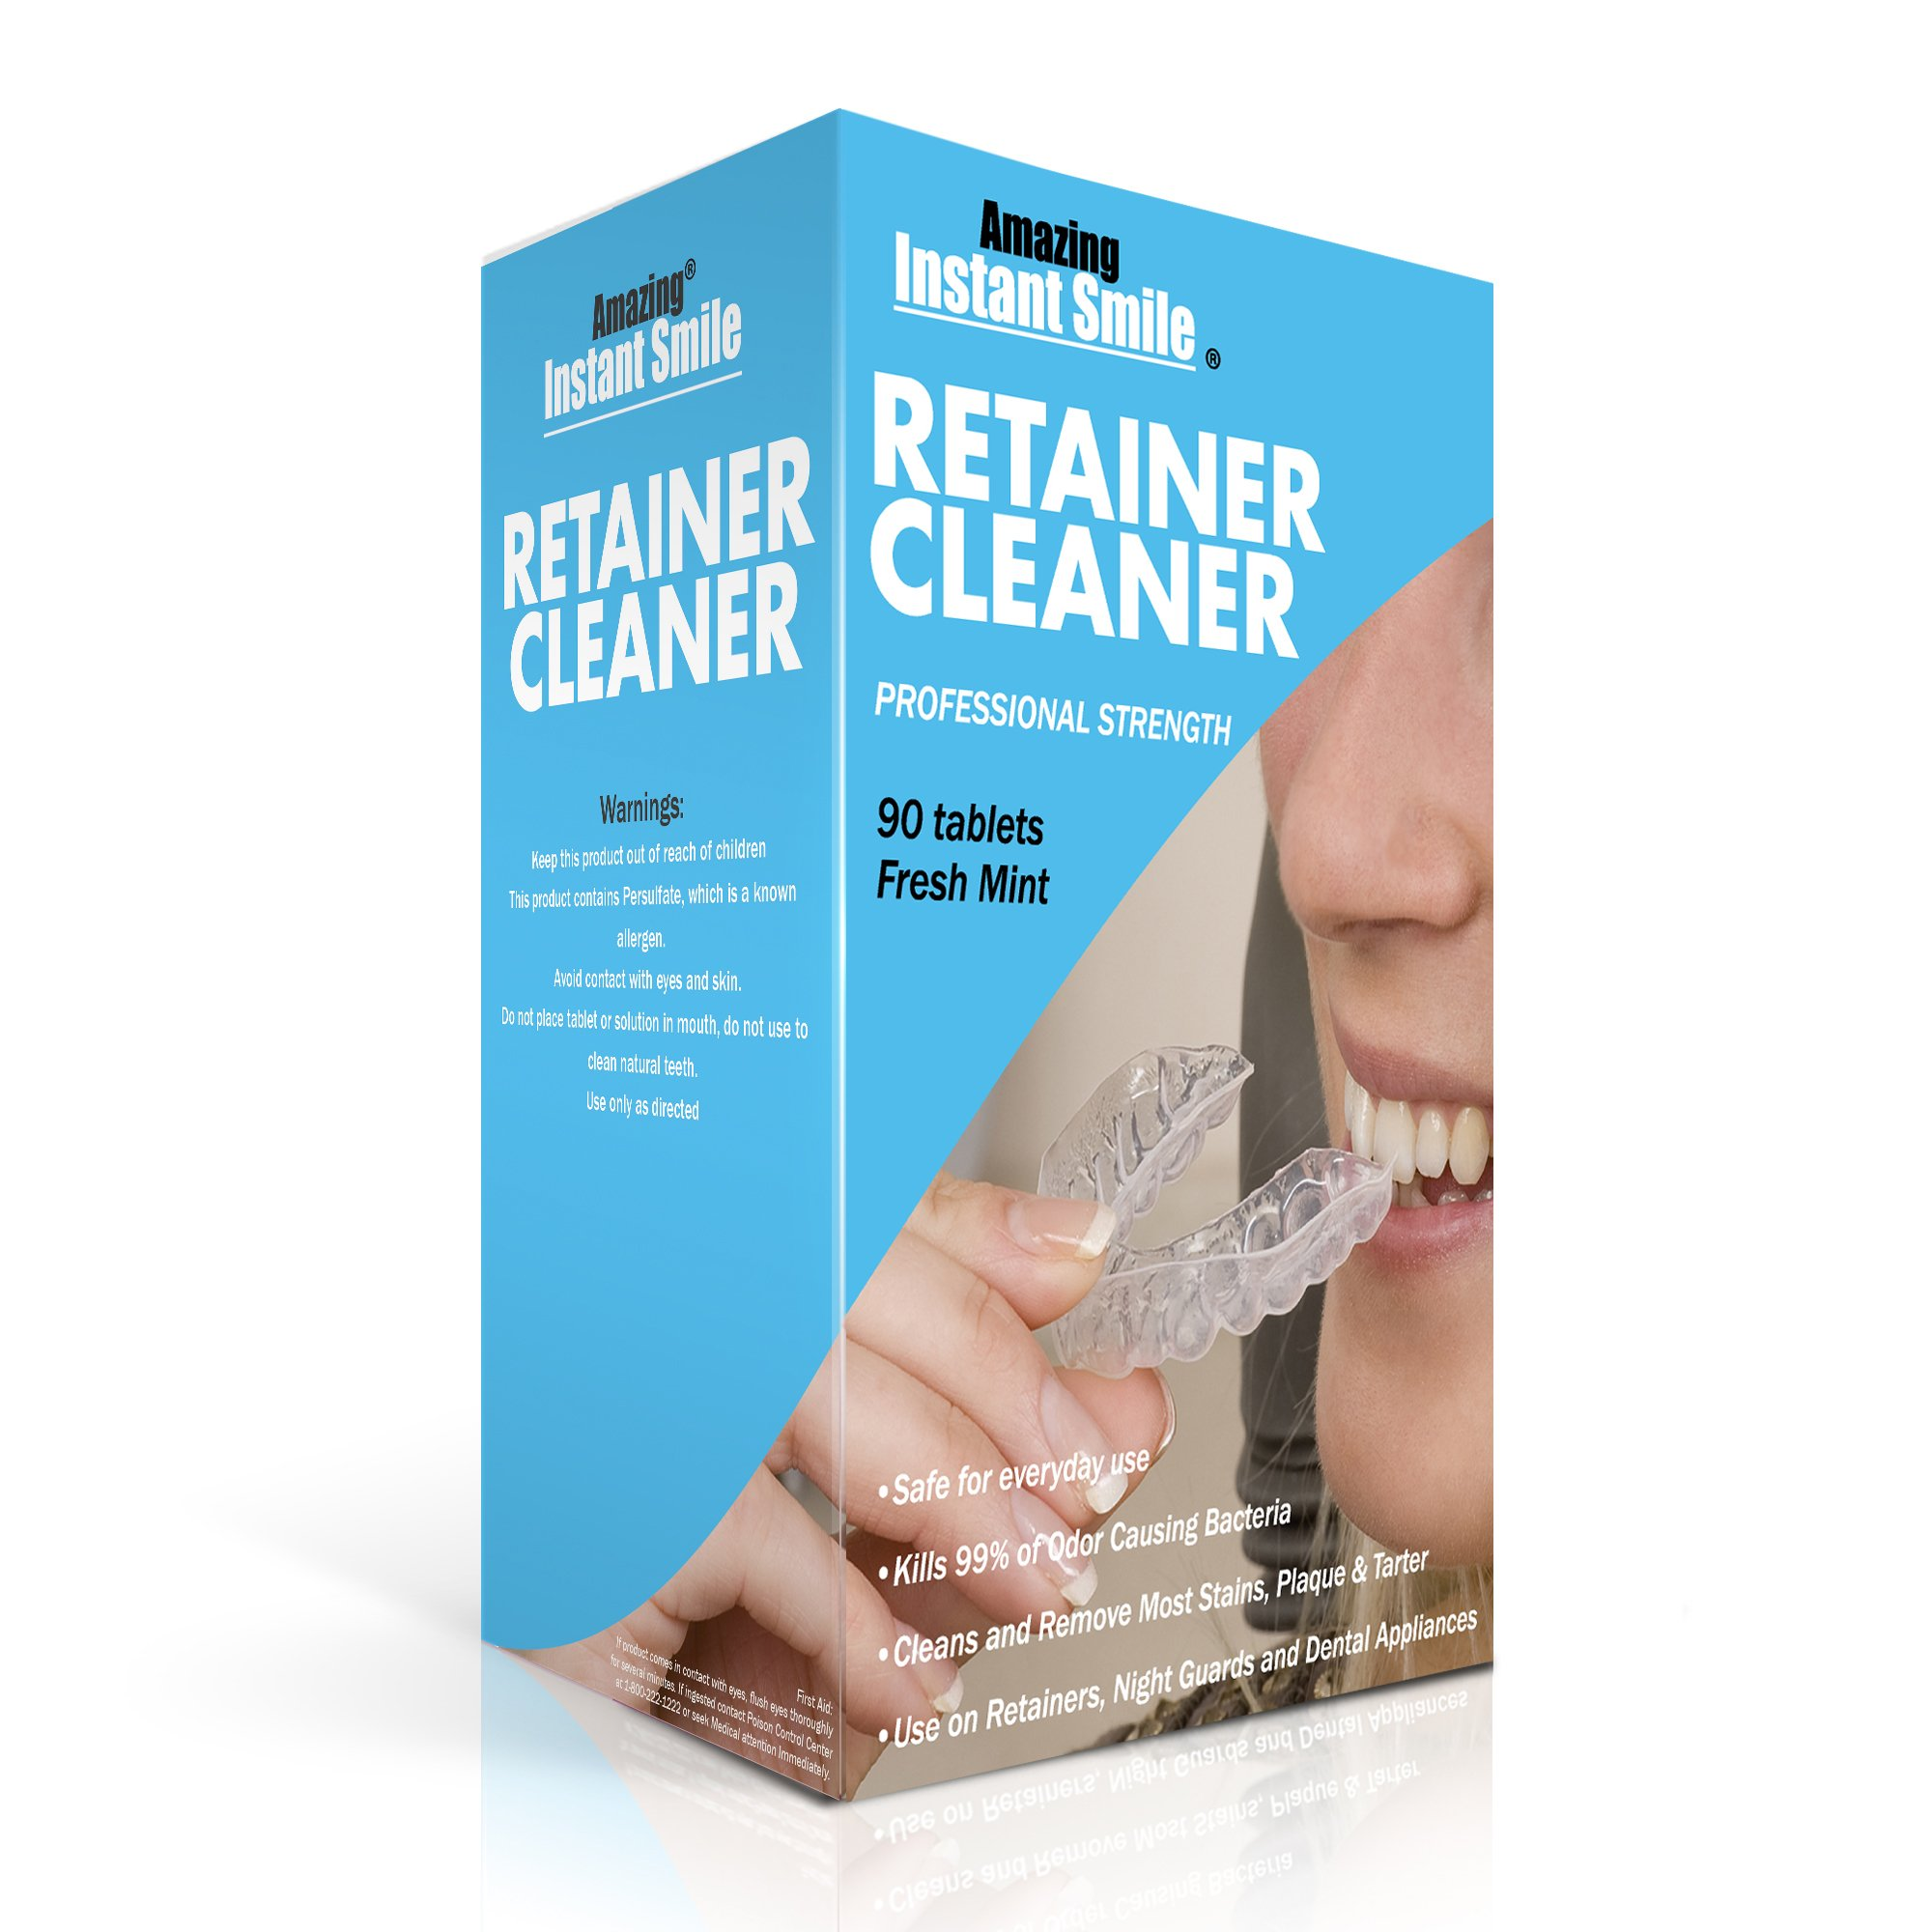 Amazing Instant Smile Professional Retainer Cleaner 90 Tablets (3 Month Supply) Cleaning Kit For Mouthguard, Night Guard, Dentures, Removable Dental Appliances Stain, Plaque And Tartar Remover